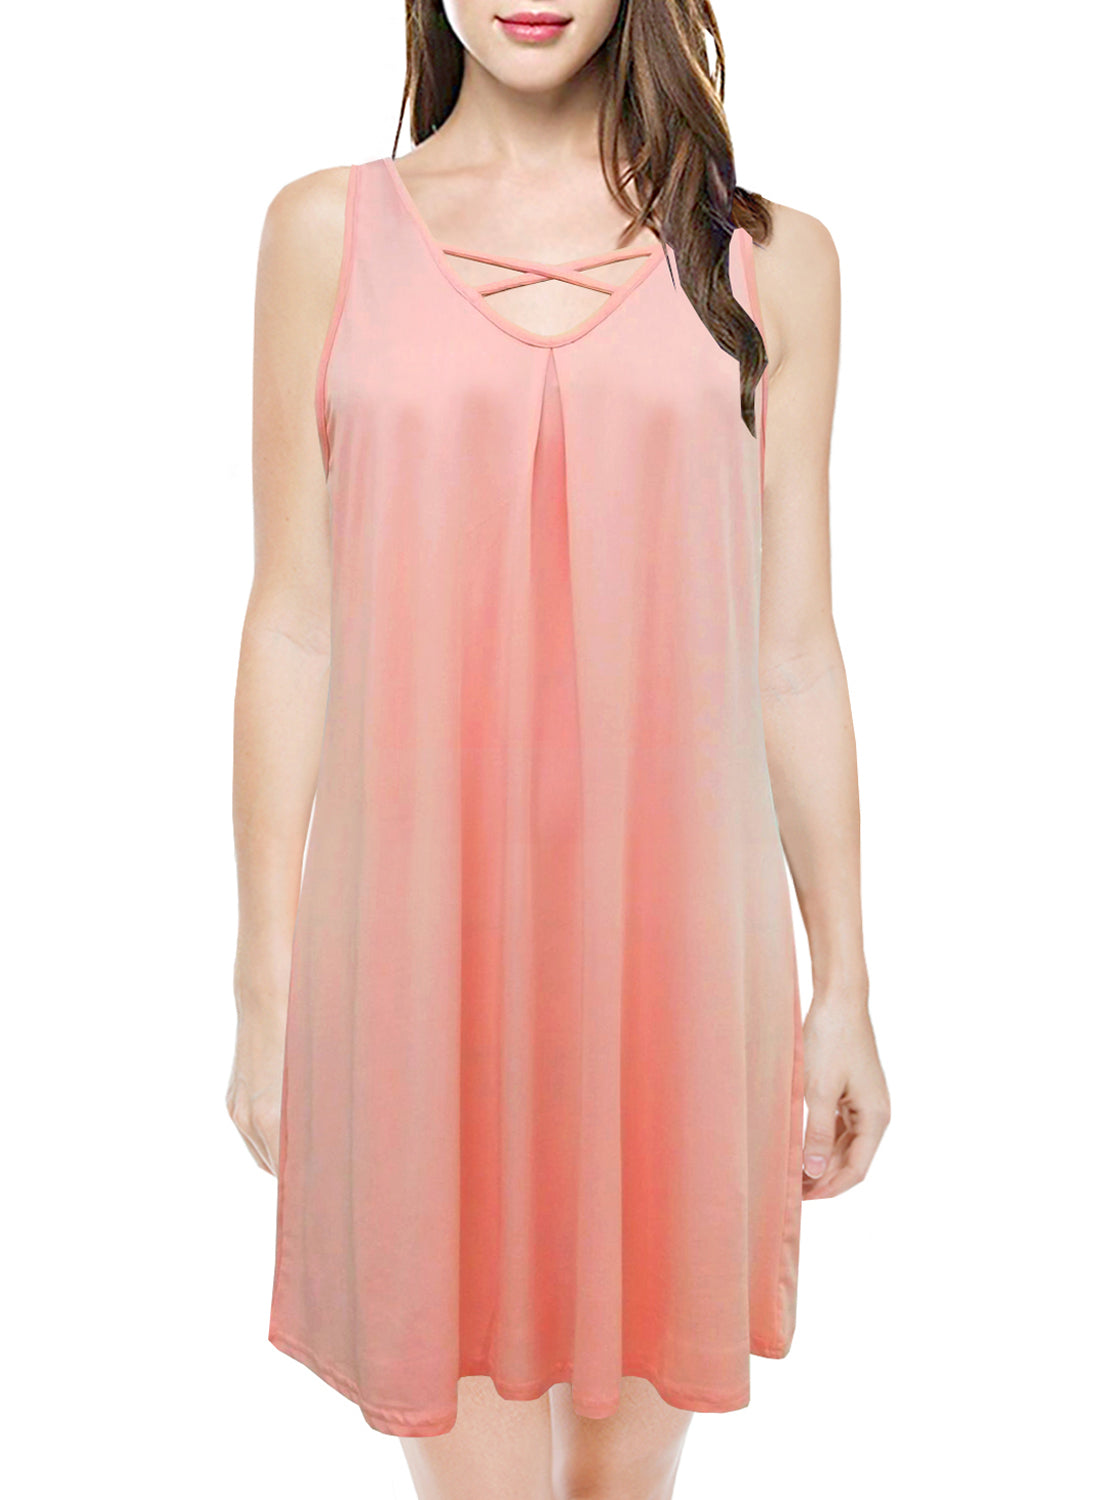 Chemise Nightgown Pleated Short Gown Sleepwear